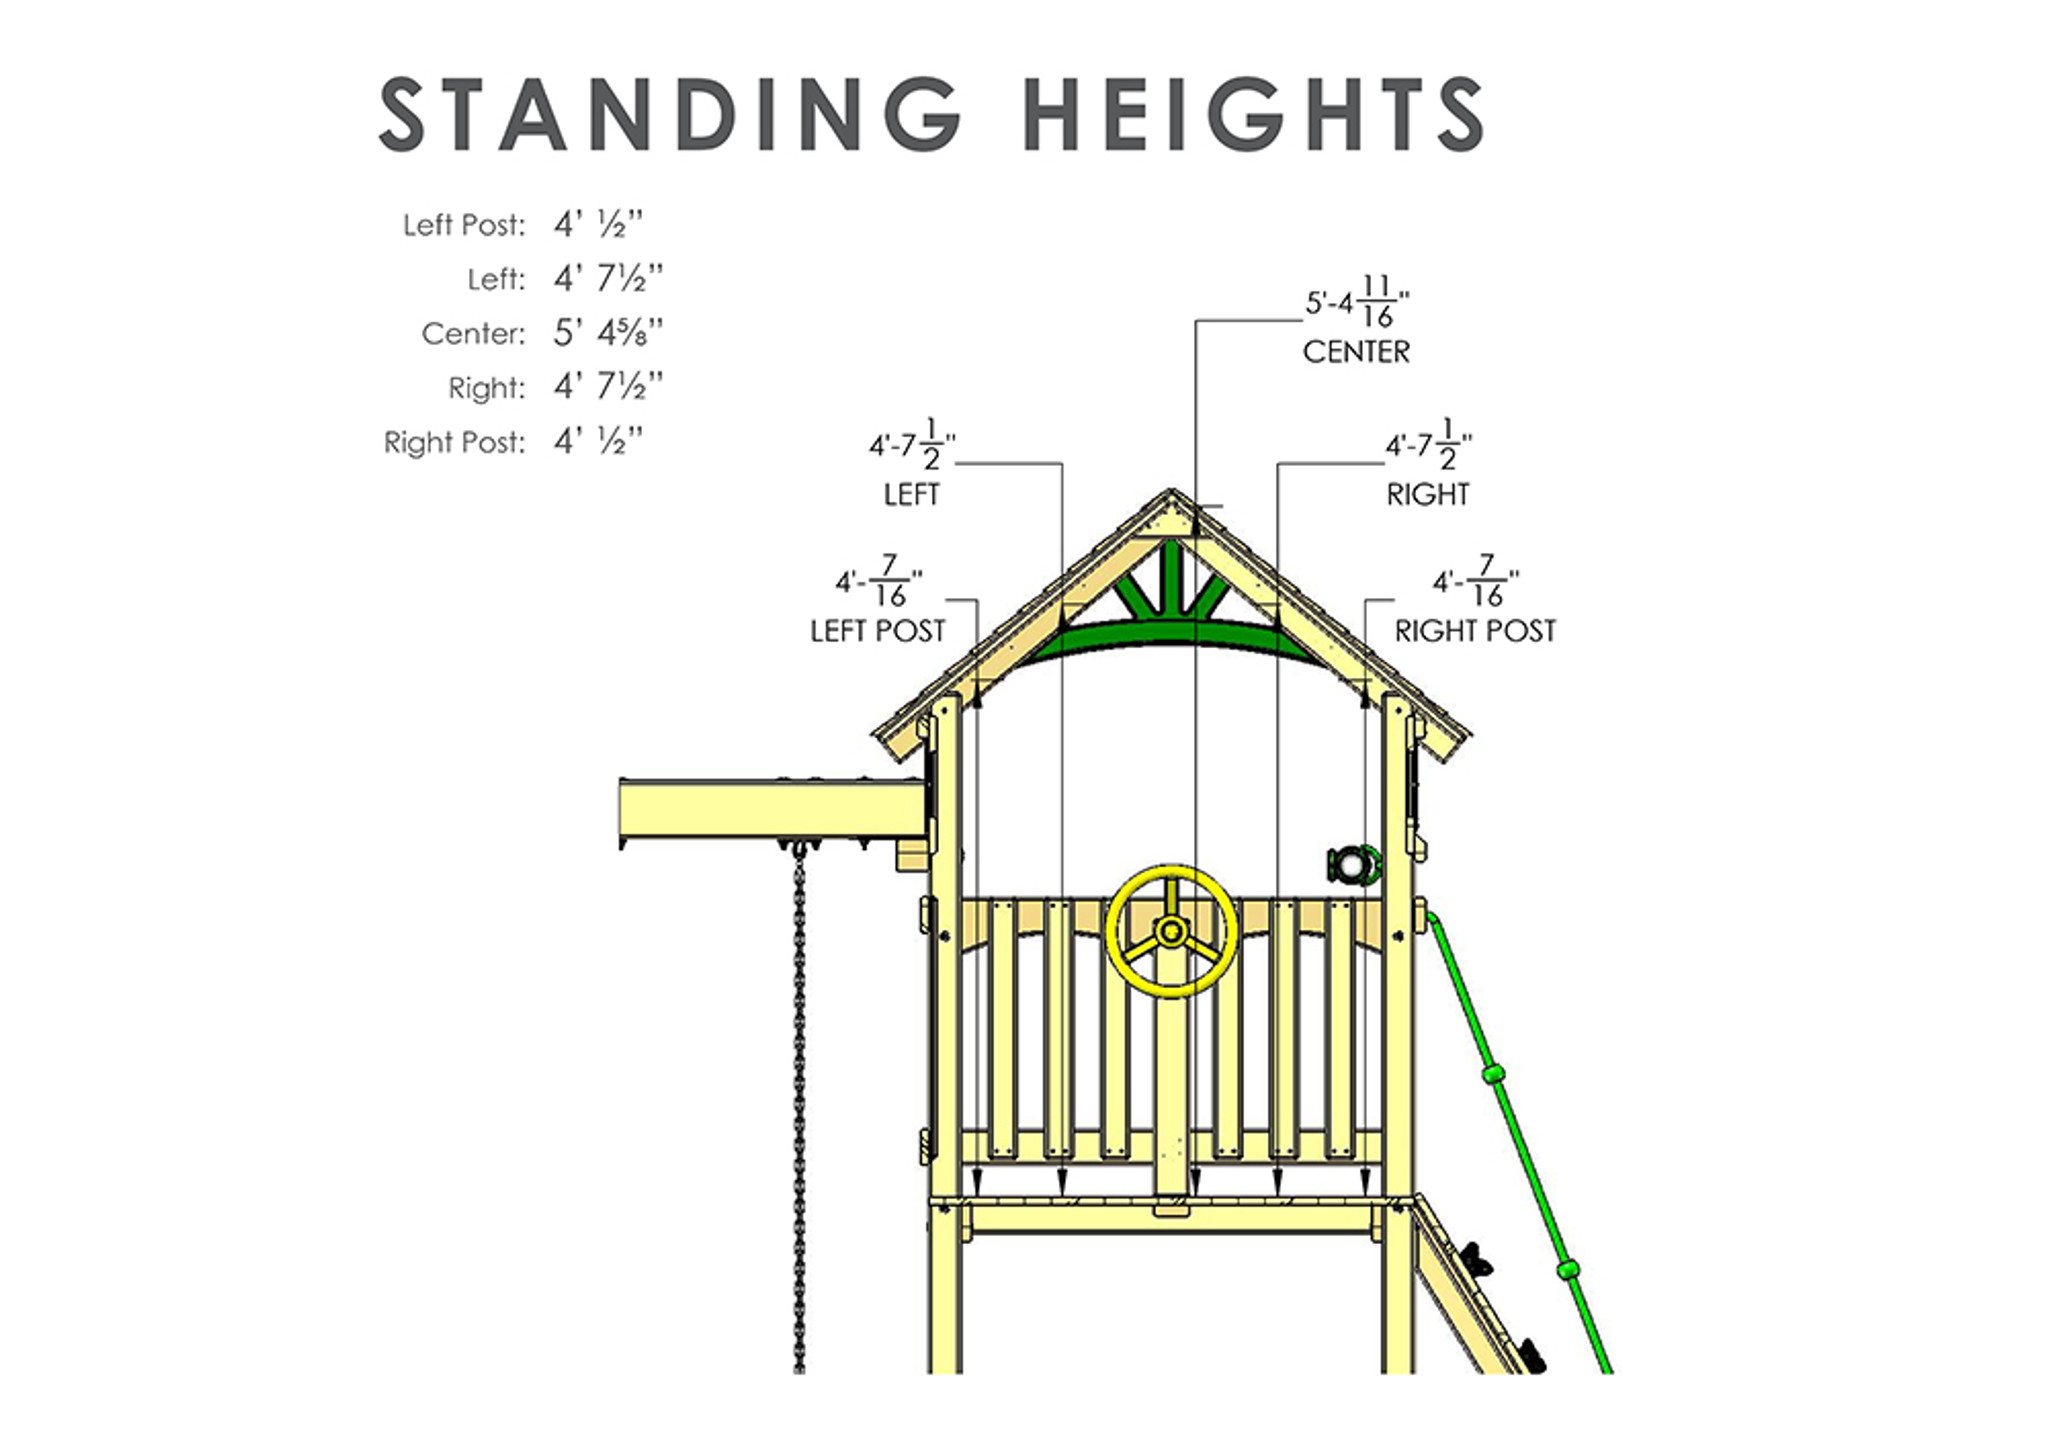 Wood Roof Standing Heights View of Passage II w/ Monkey Bars Swingset from Playnation